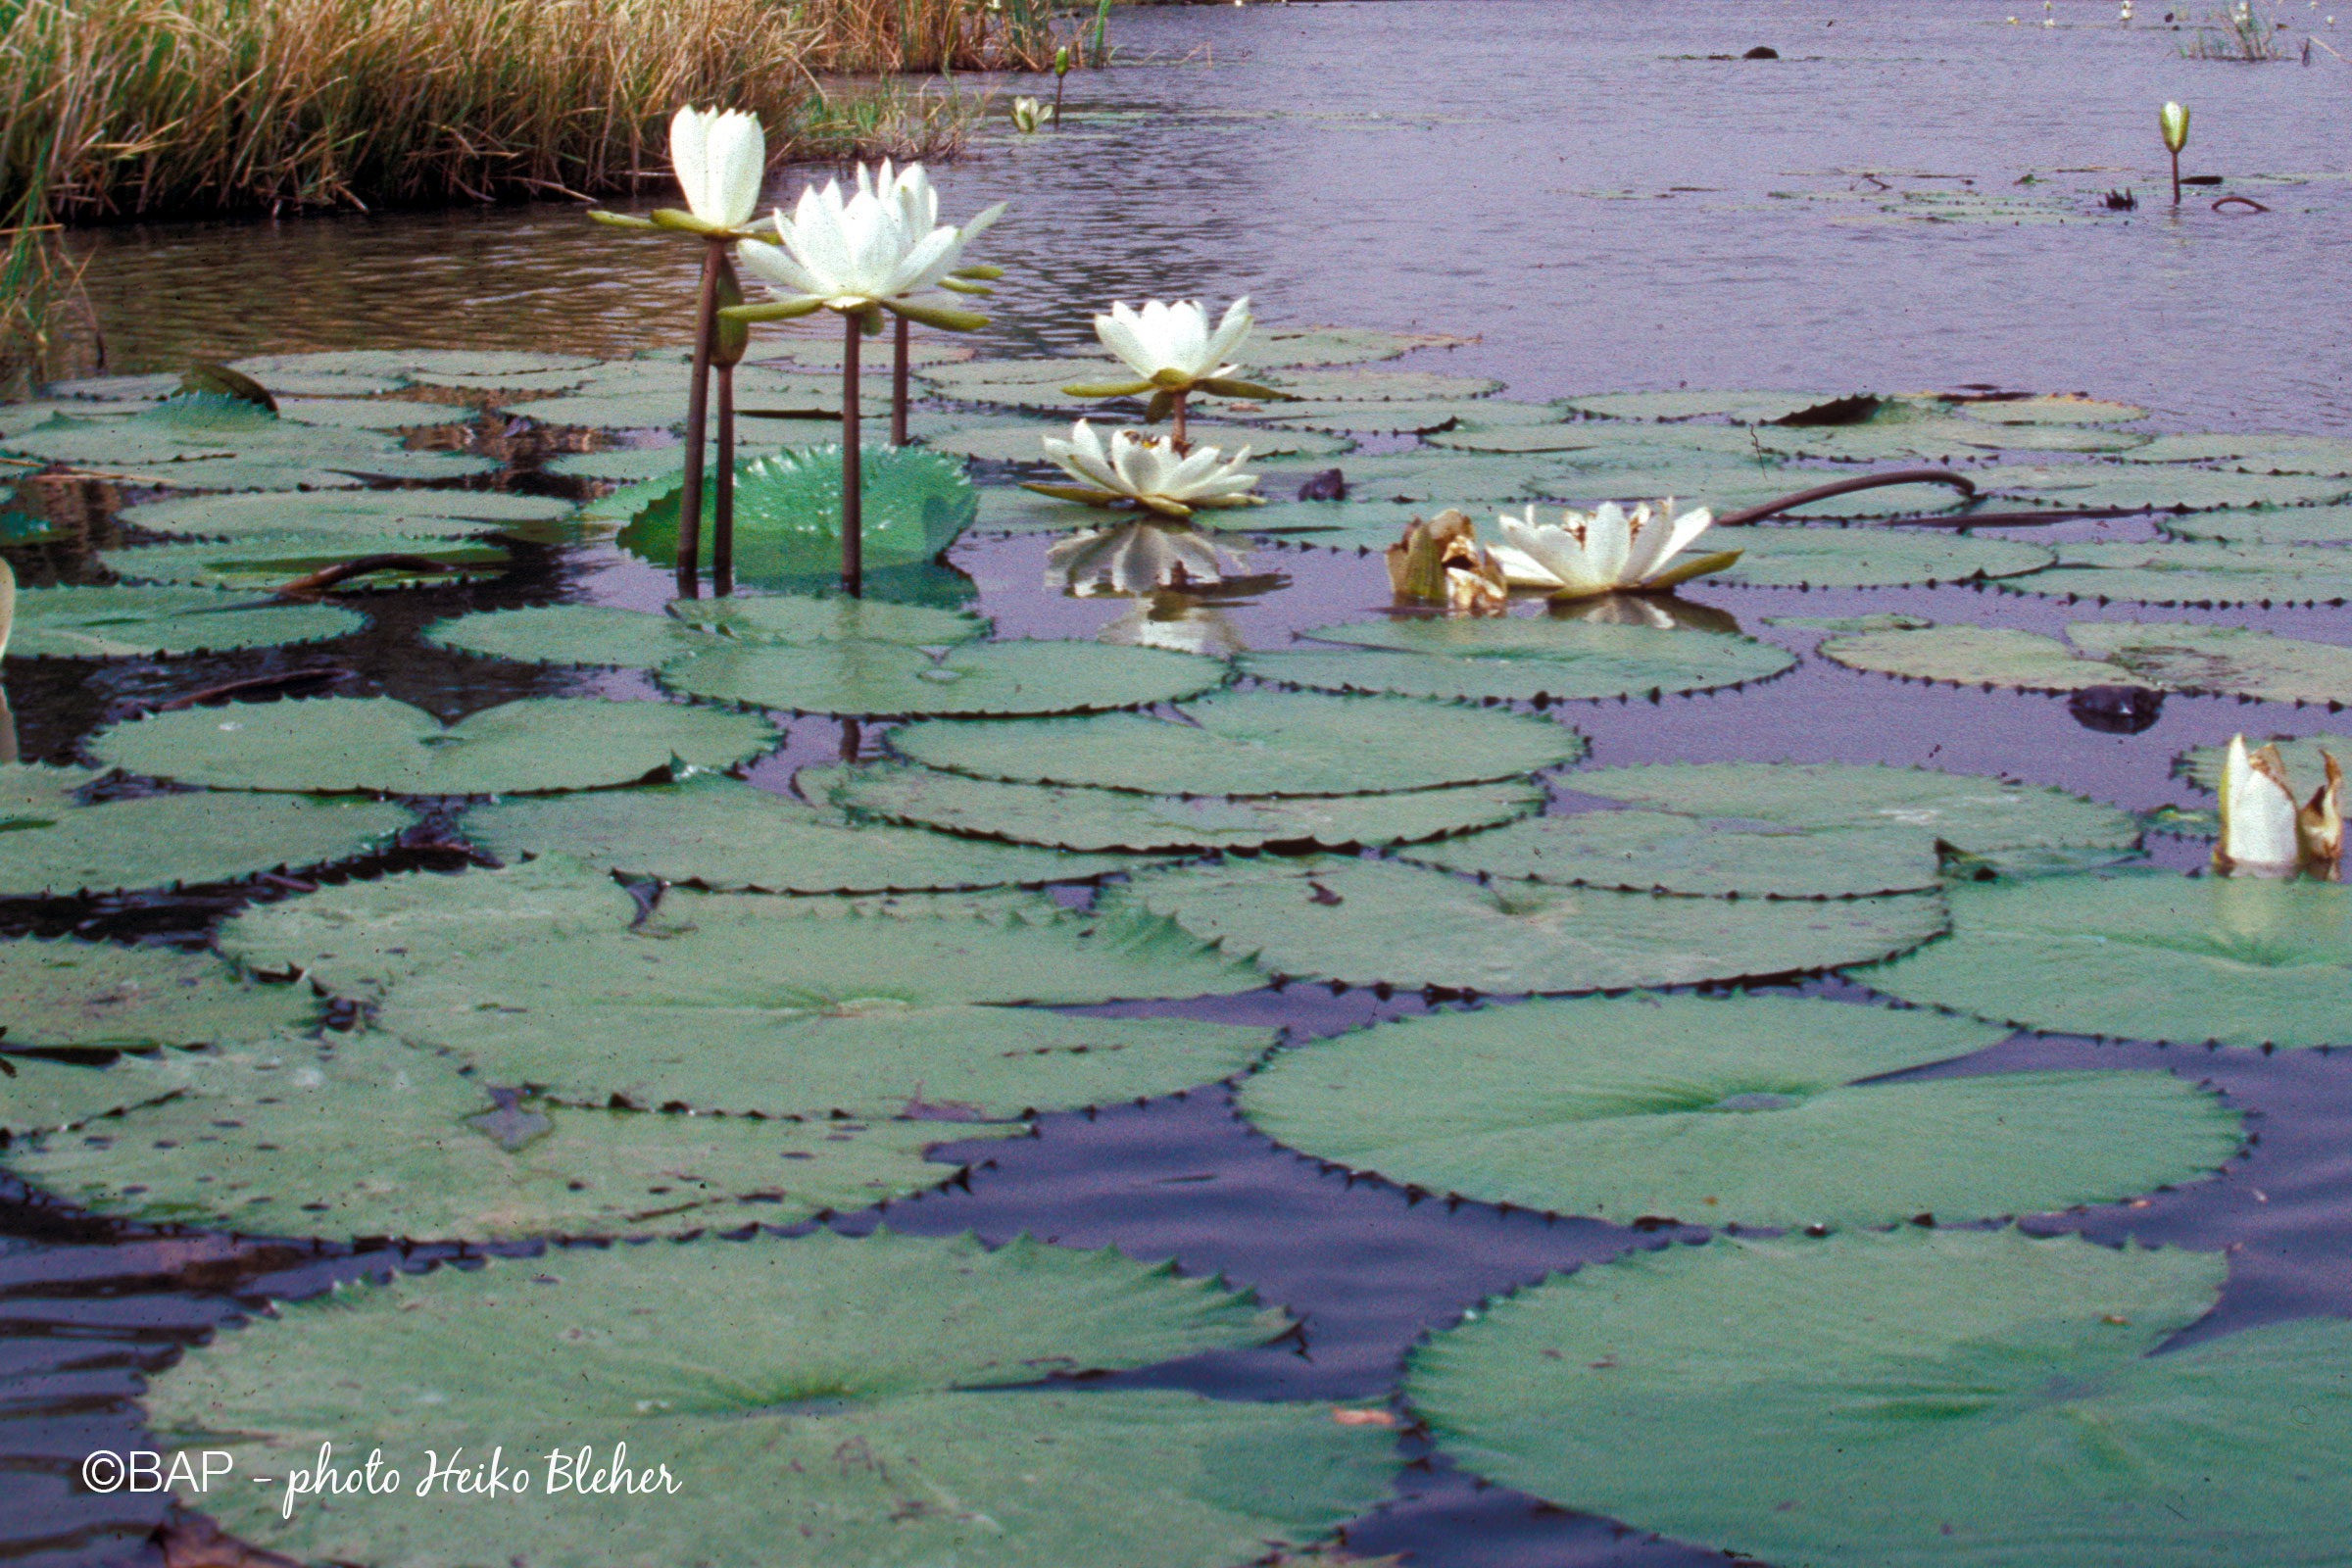 Nymphaea sp., Lower Niger, Nigeria. ©BAP, photo H. Bleher